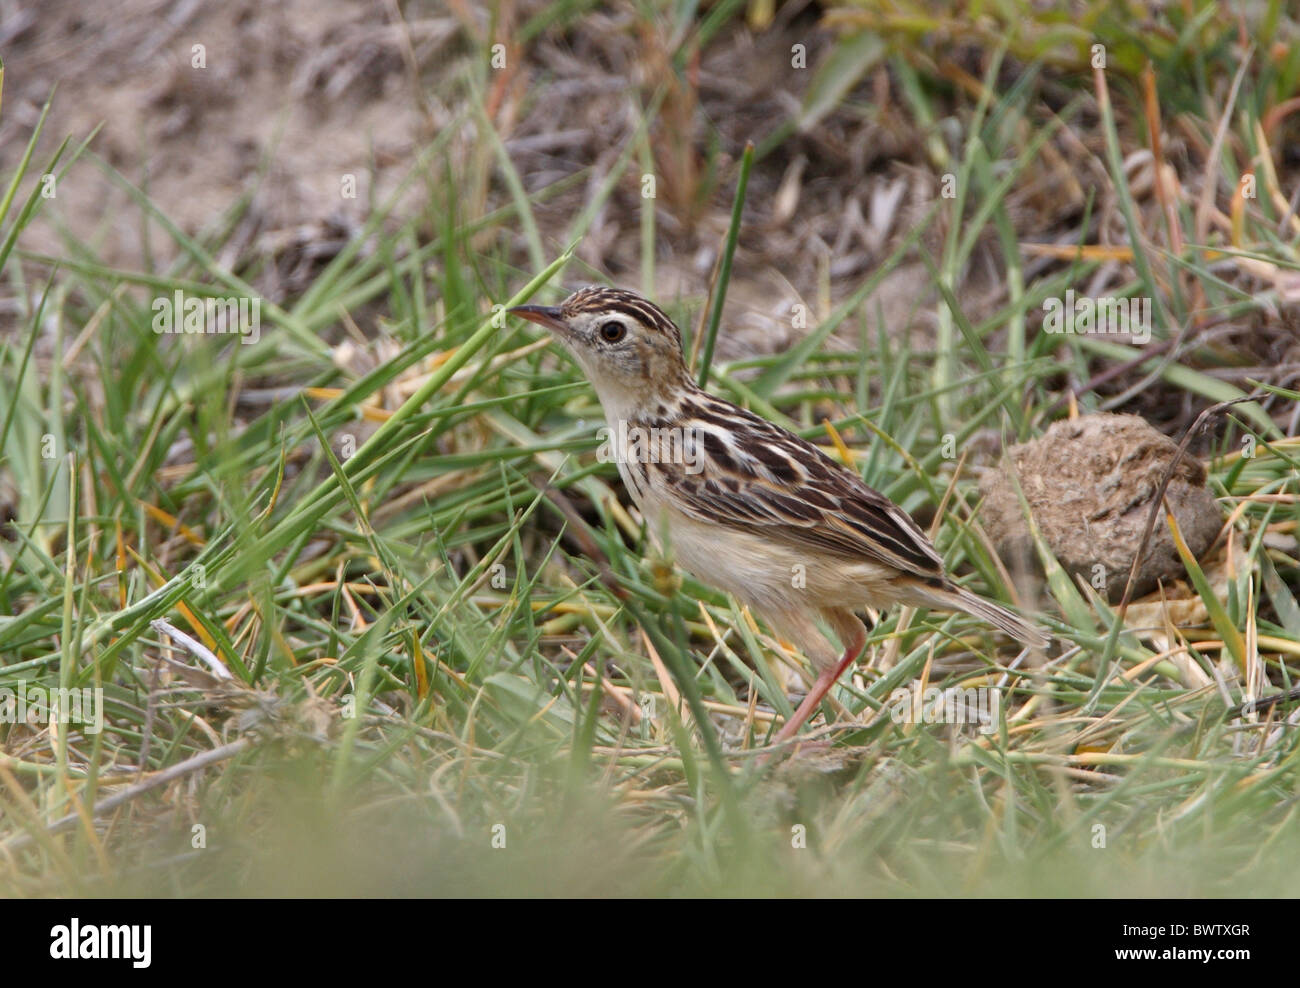 Pectoral-patch Cisticola (Cisticola brunnescens) adult, standing on ground, Lake Nakuru N.P., Great Rift Valley, - Stock Image